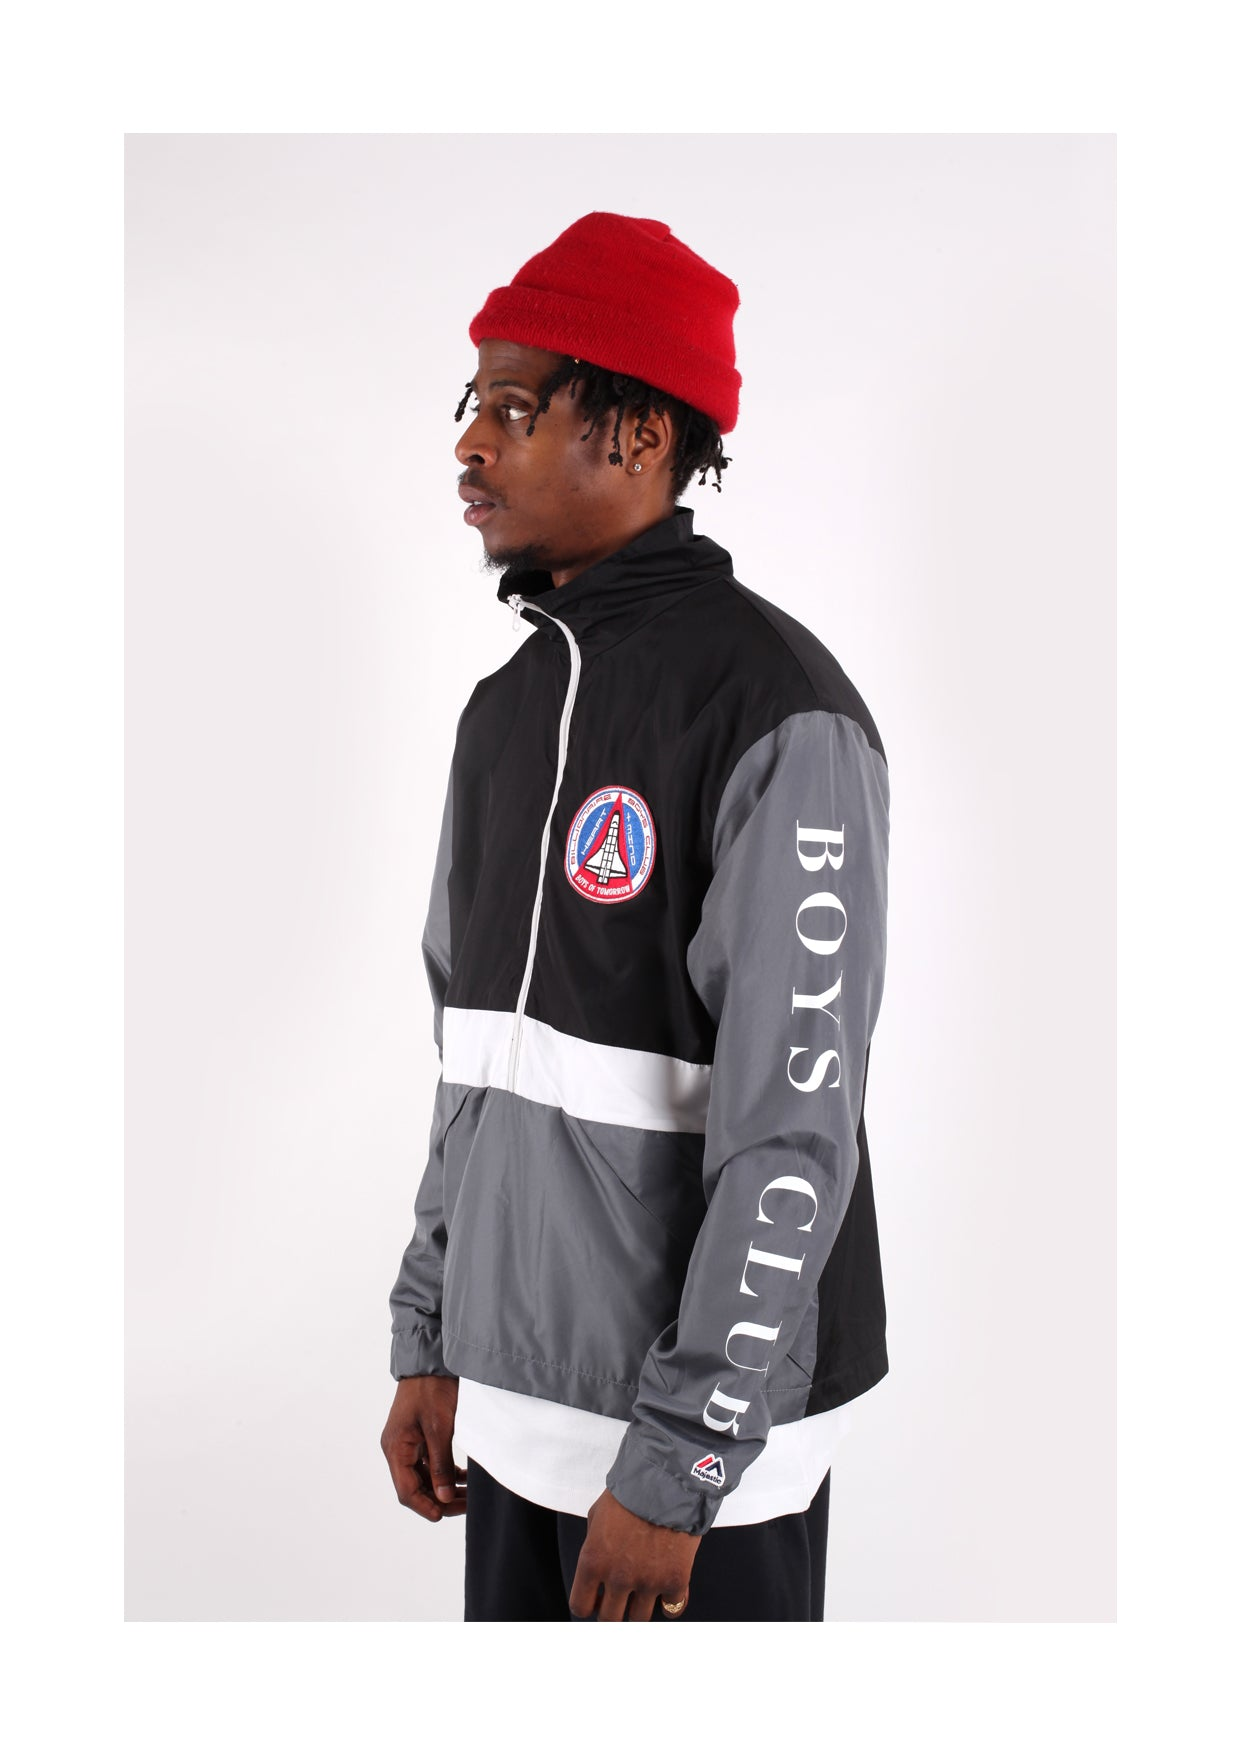 Billionaire Boys Club Spring 16 Preview produced by a number of